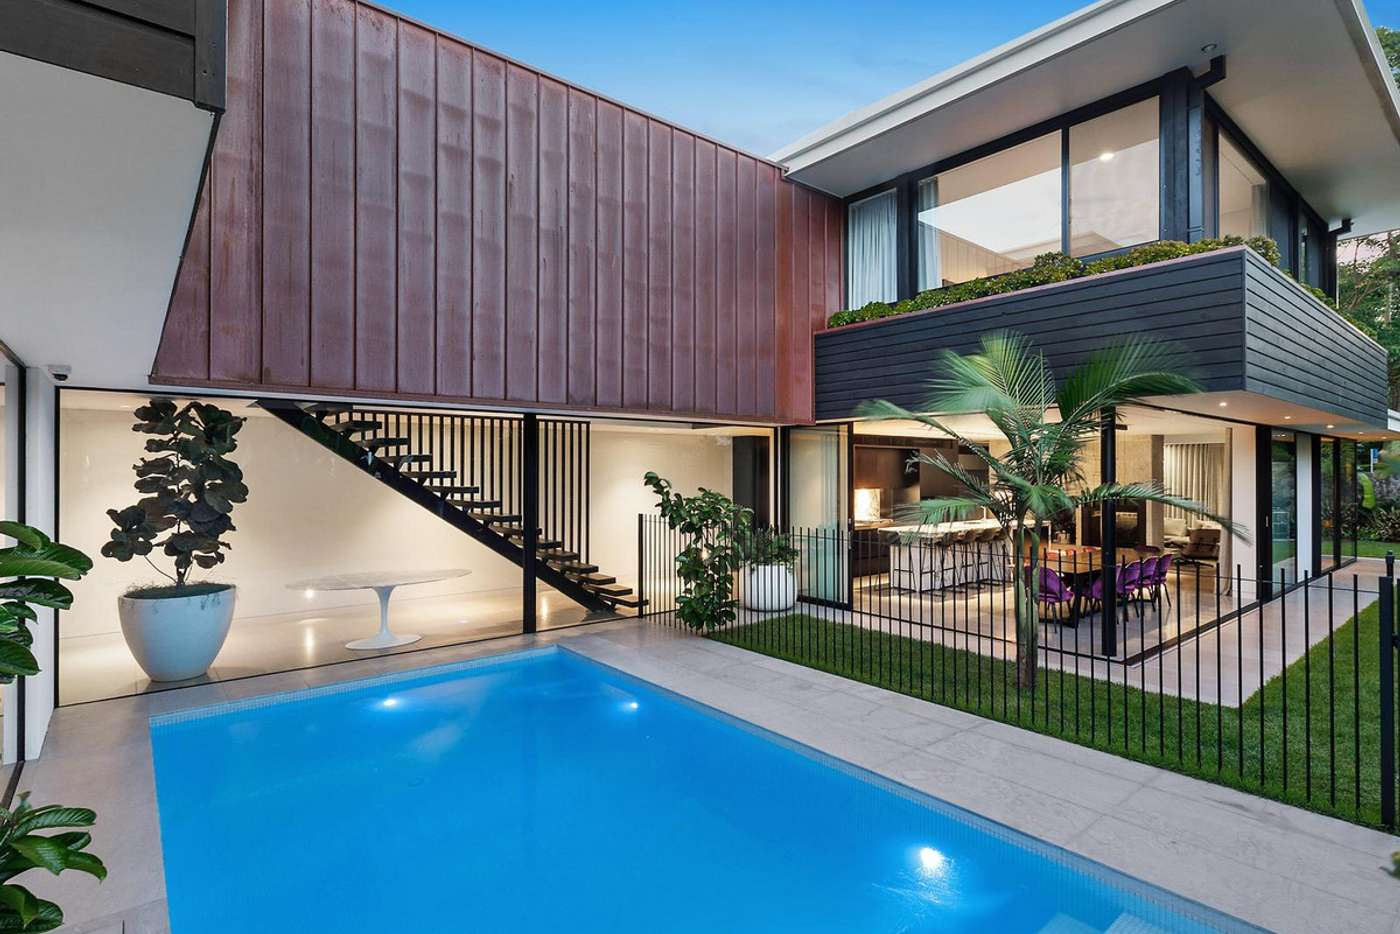 Main view of Homely house listing, 16 Thompson Street, Mosman NSW 2088